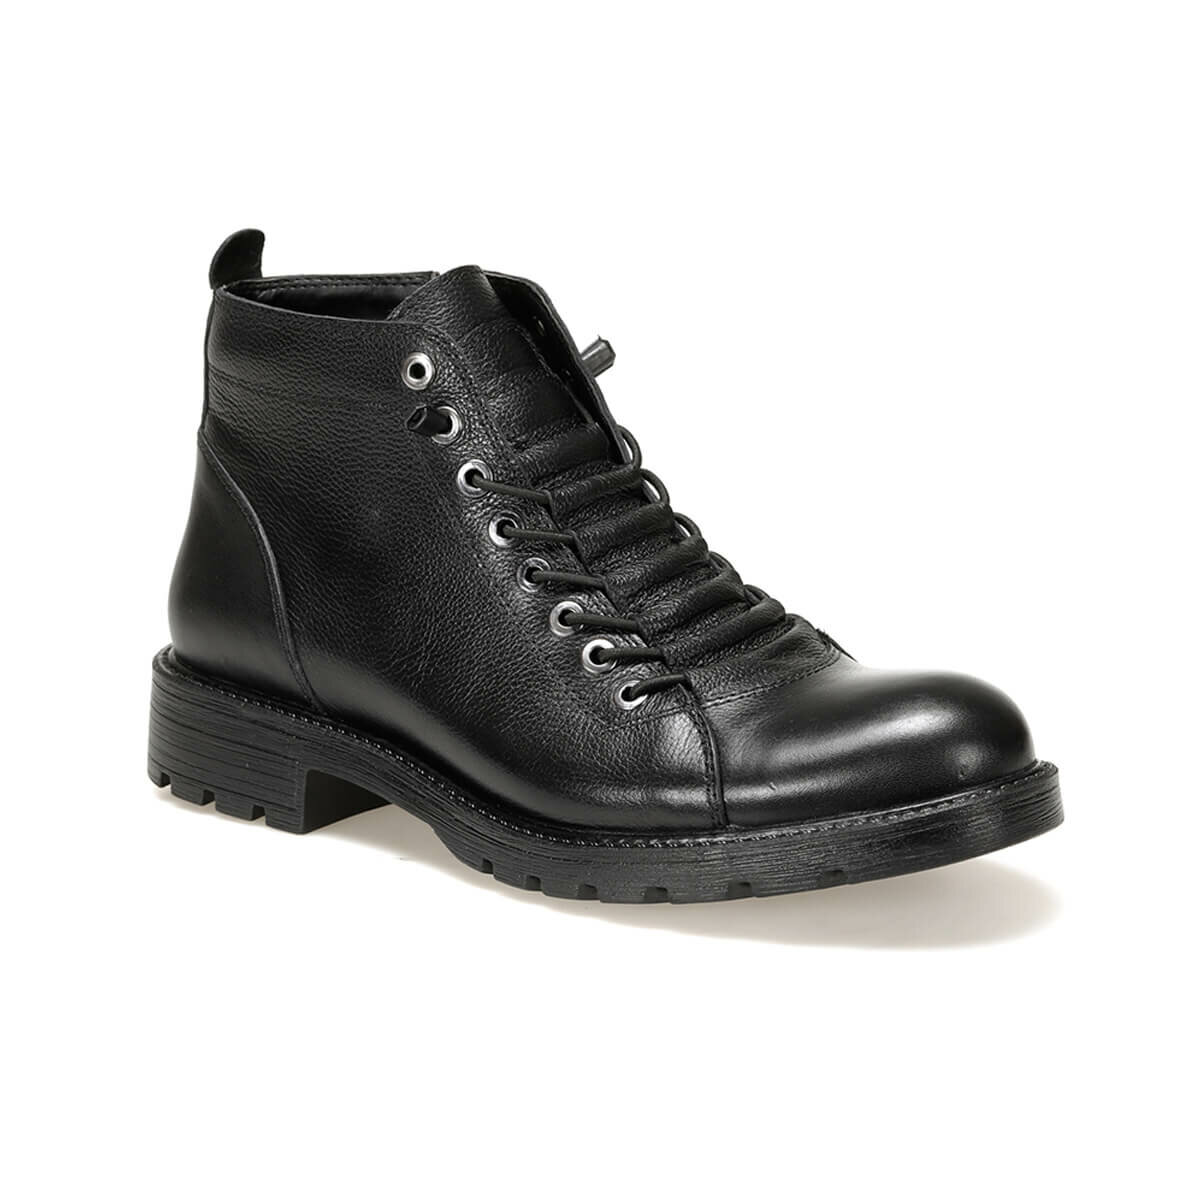 FLO 013-1 Black Men Boots Oxide